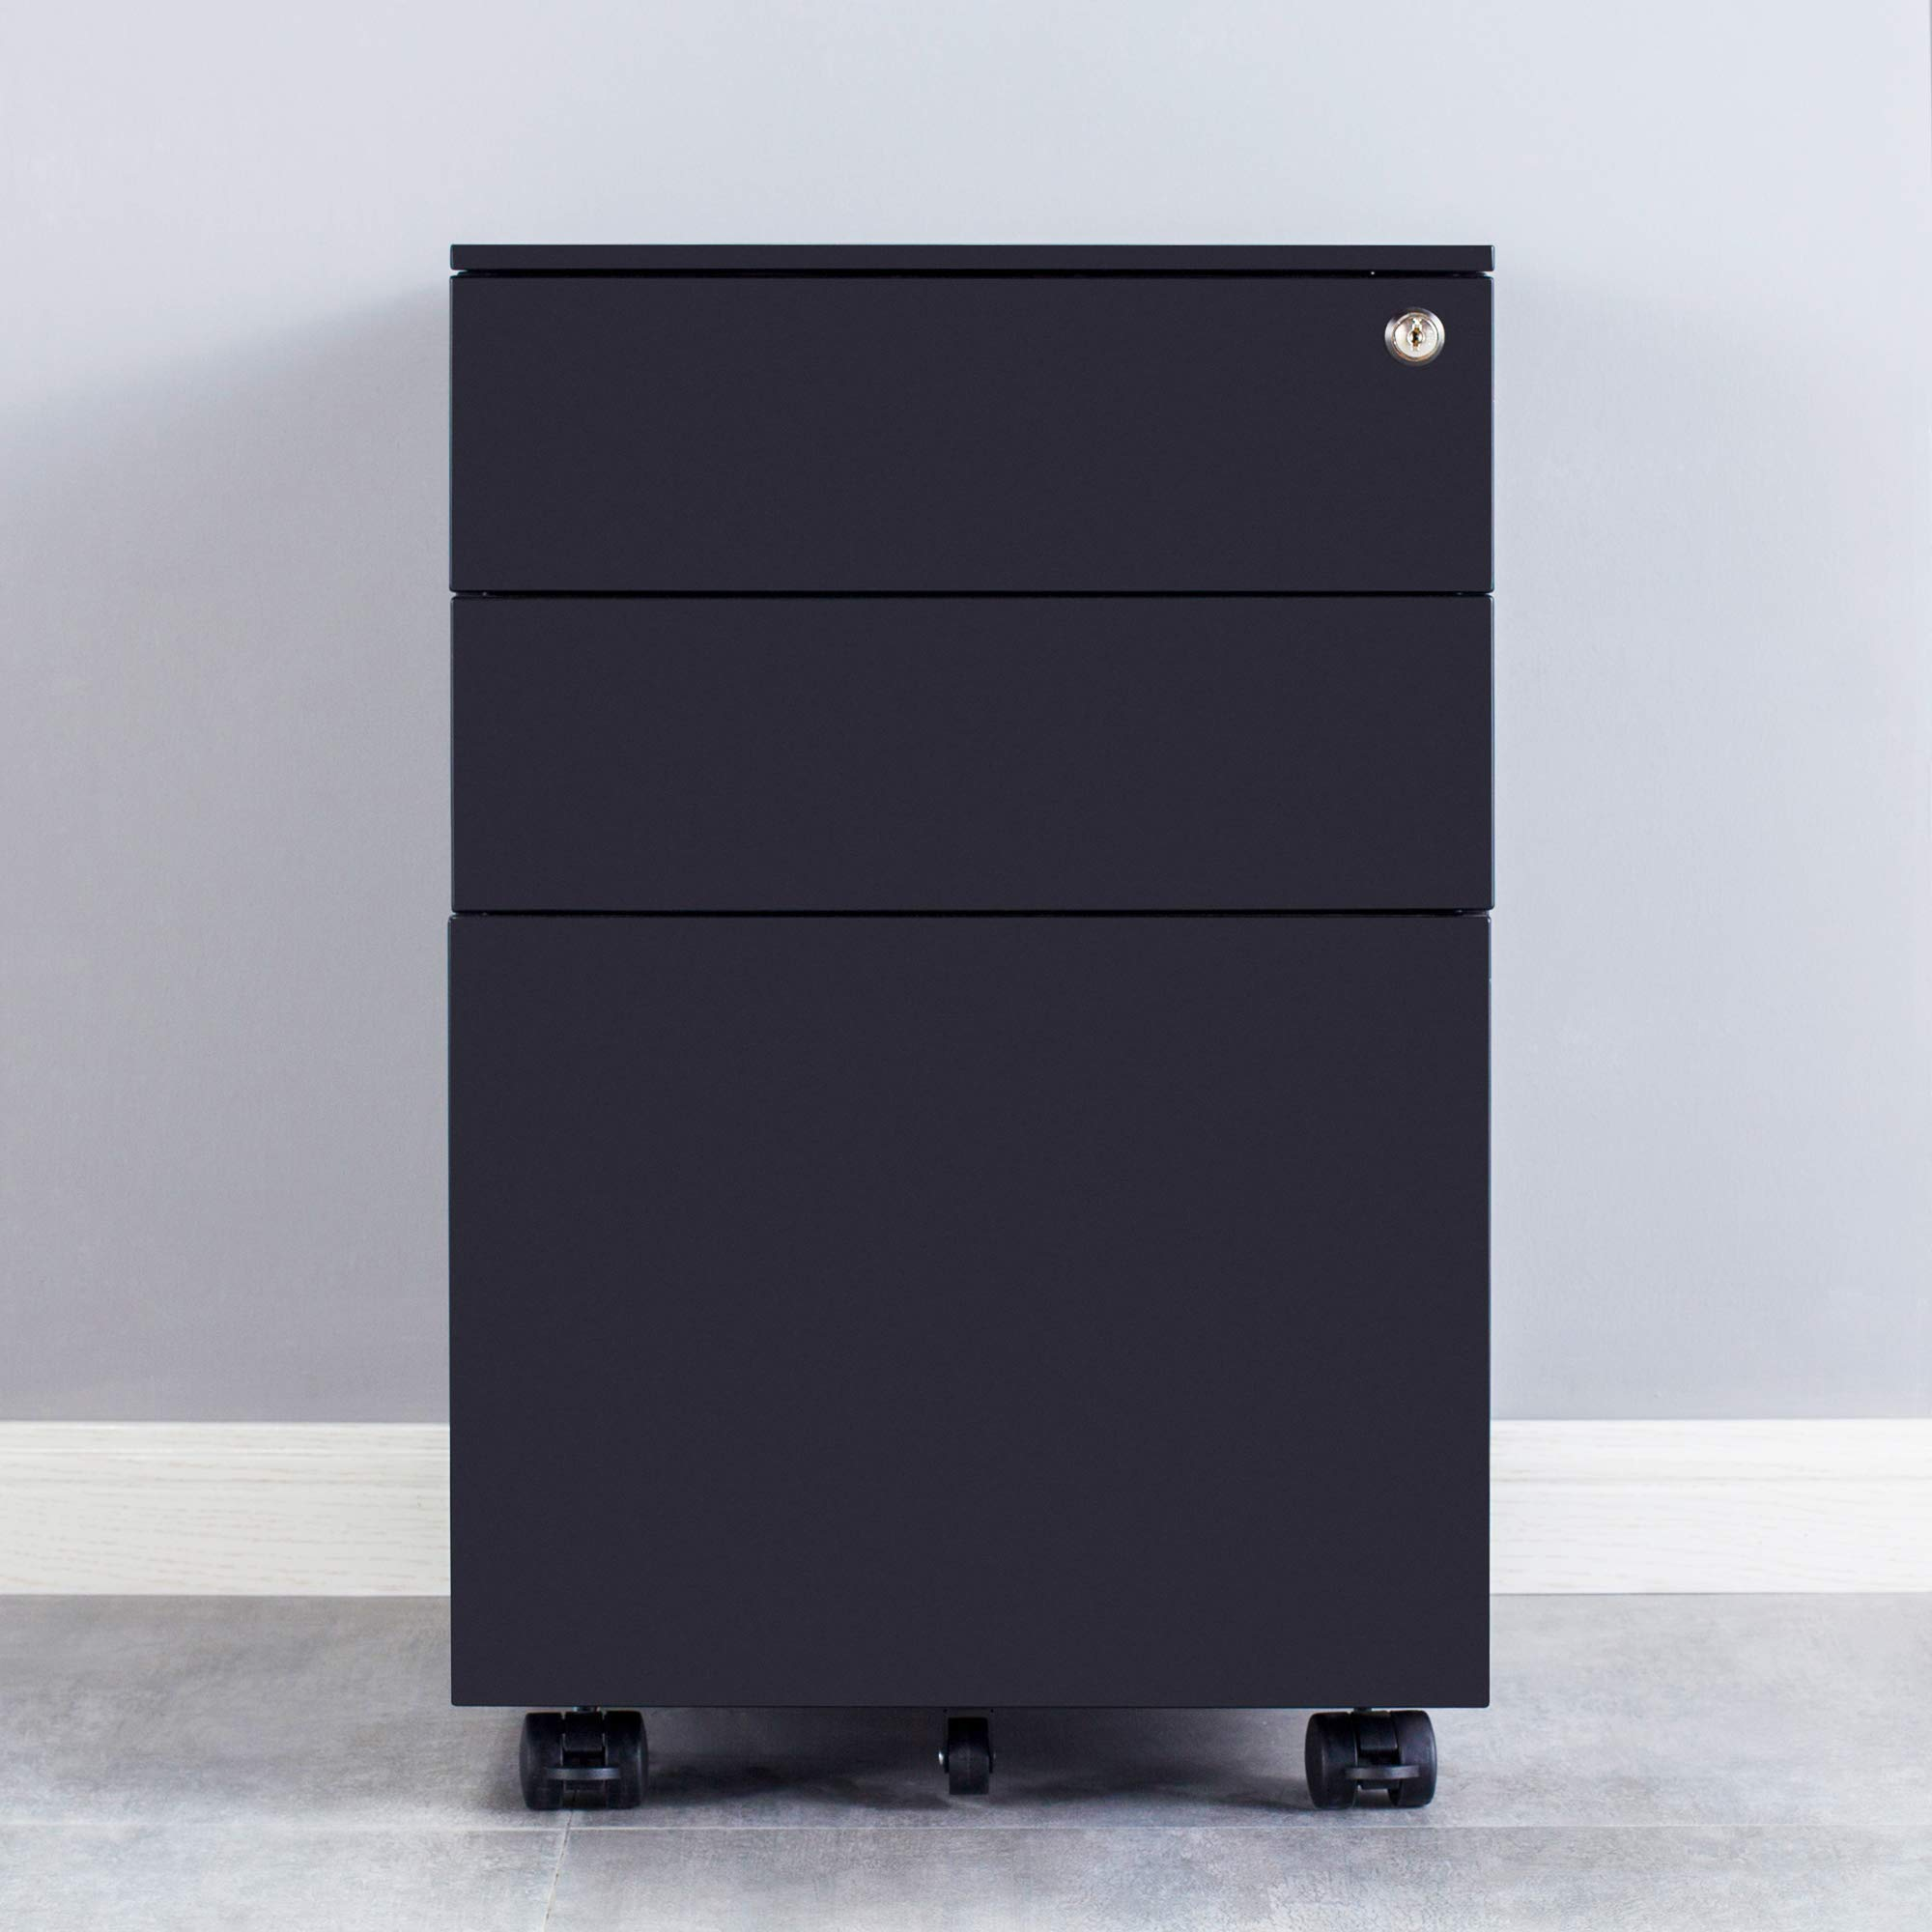 Ootori 3-Drawer Mobile Letter File Cabinet with Keys,Locking Filing Cabinet on Wheels, Black by OOTORI